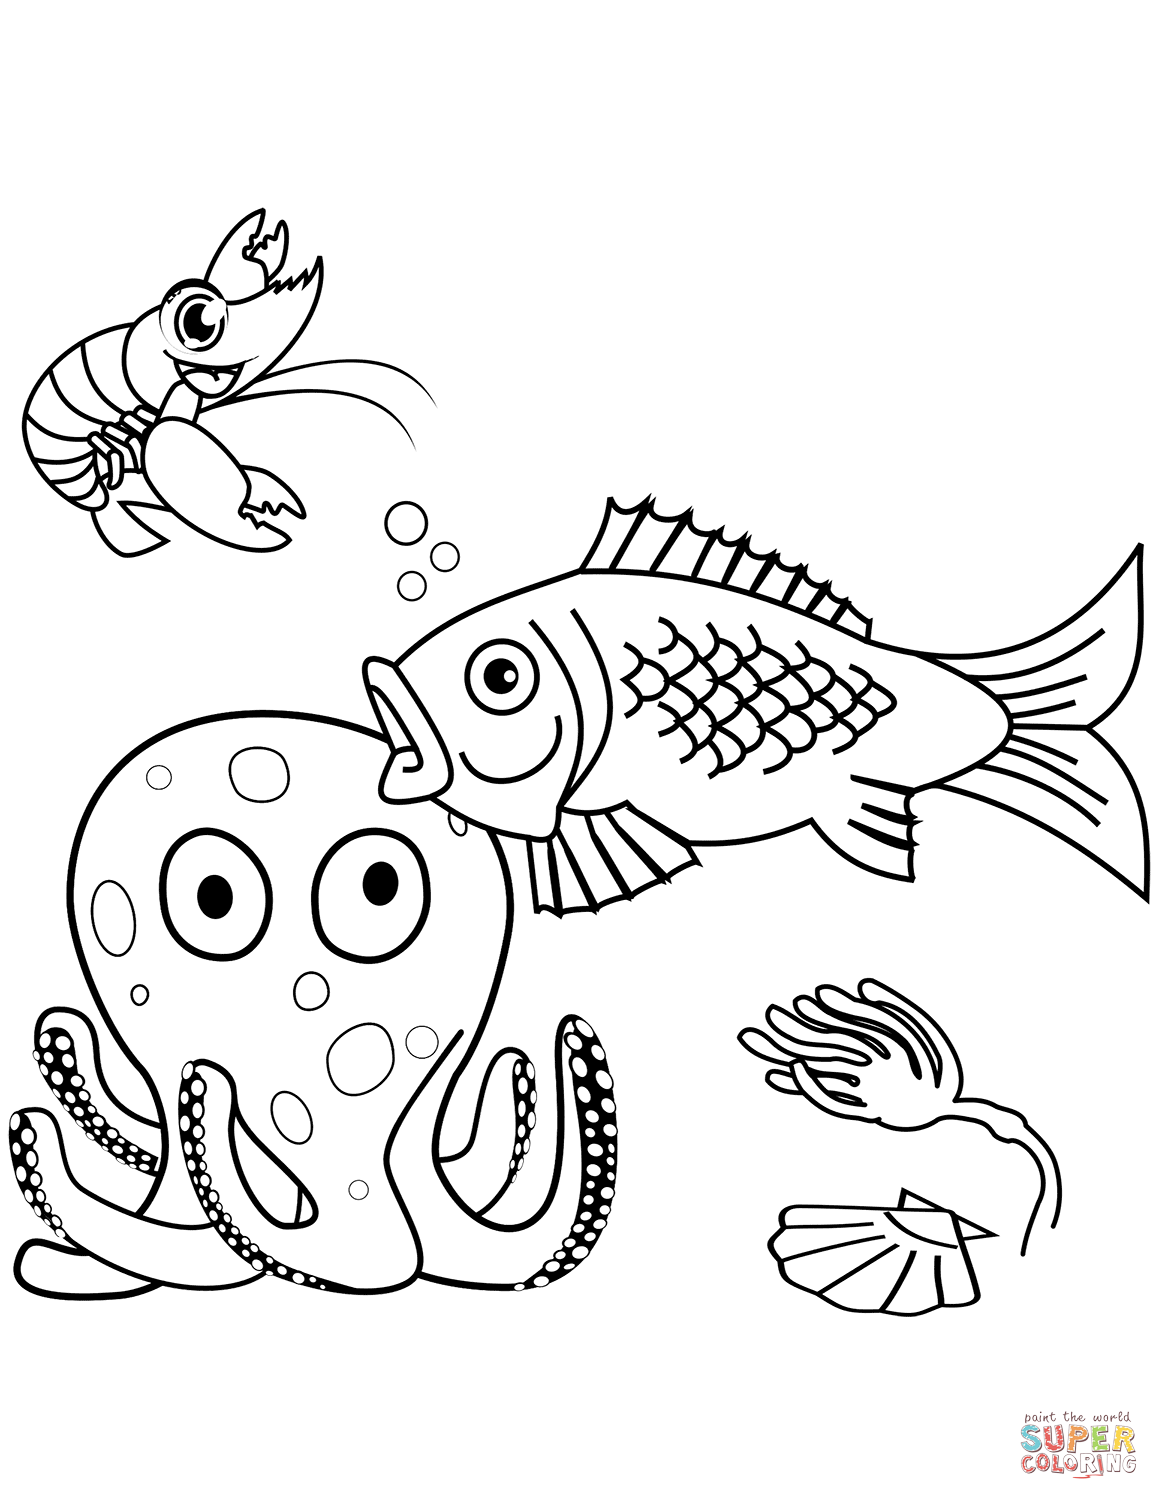 sealife coloring pages sea life coloring page free printable coloring pages pages coloring sealife